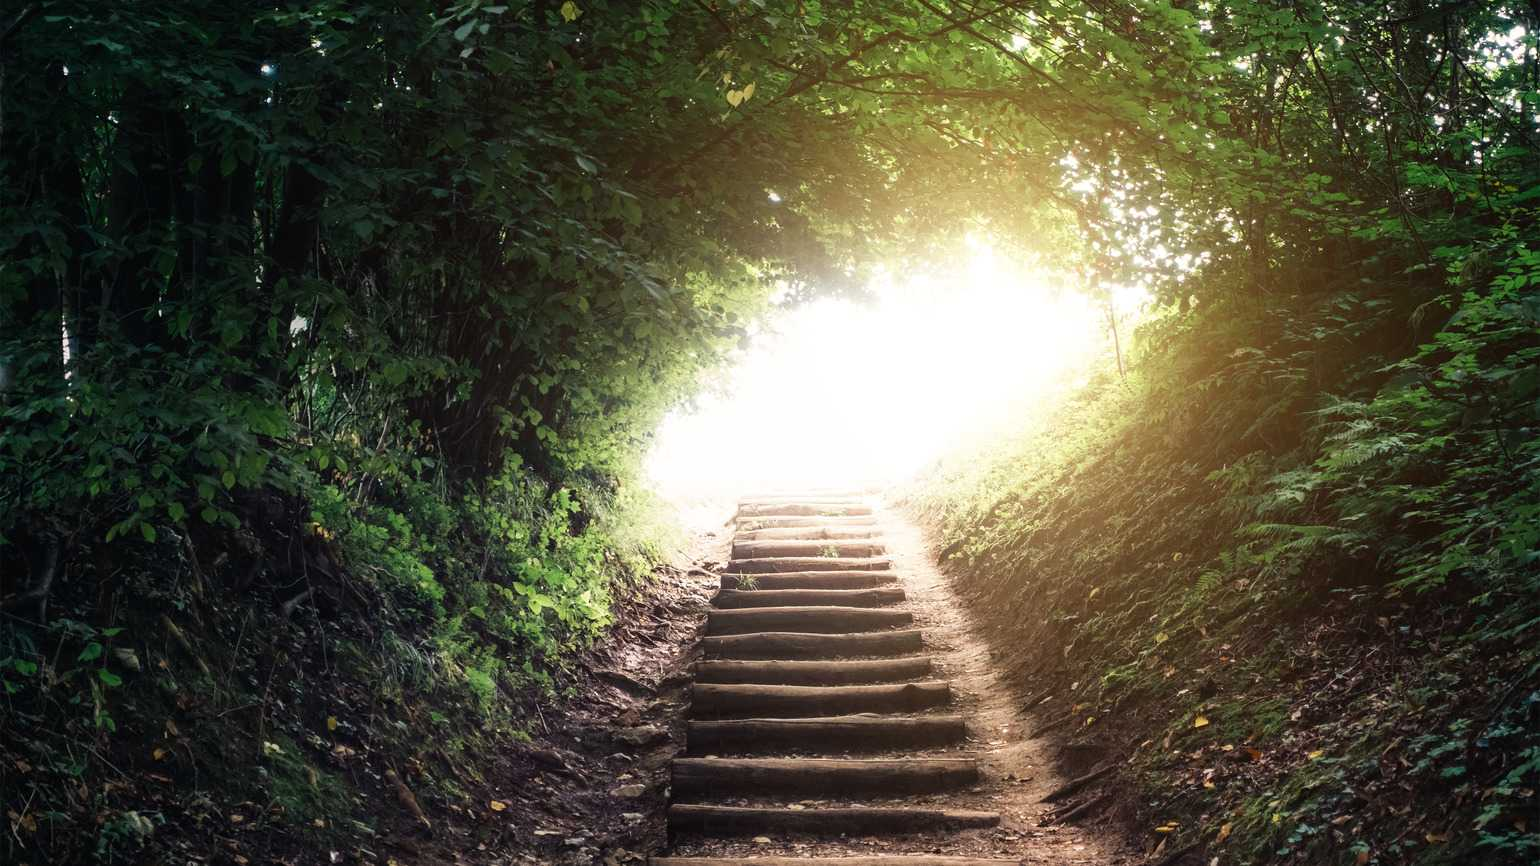 Path in forest to light (Getty Images)